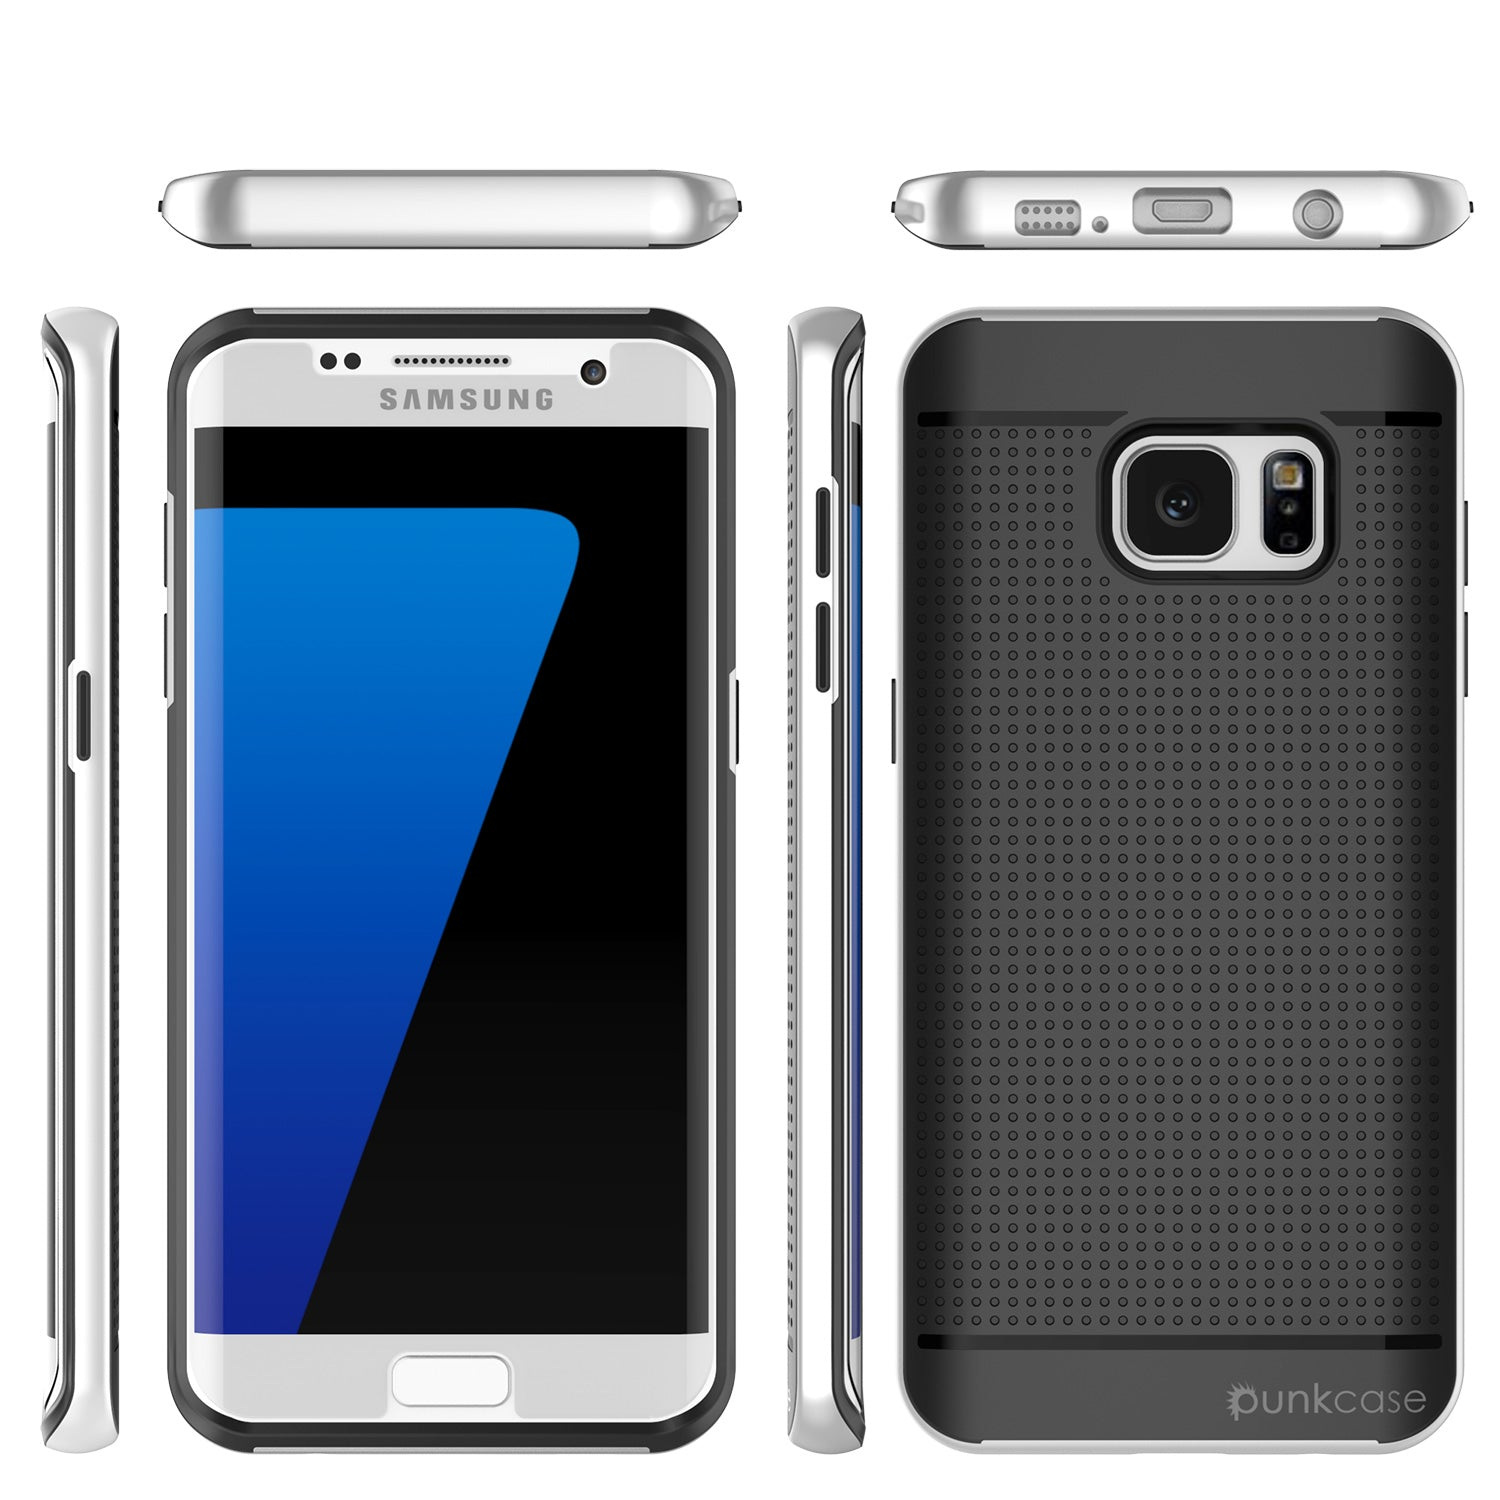 Galaxy S7 Edge Case, PunkCase STEALTH Silver Series Hybrid 3-Piece Shockproof Dual Layer Cover